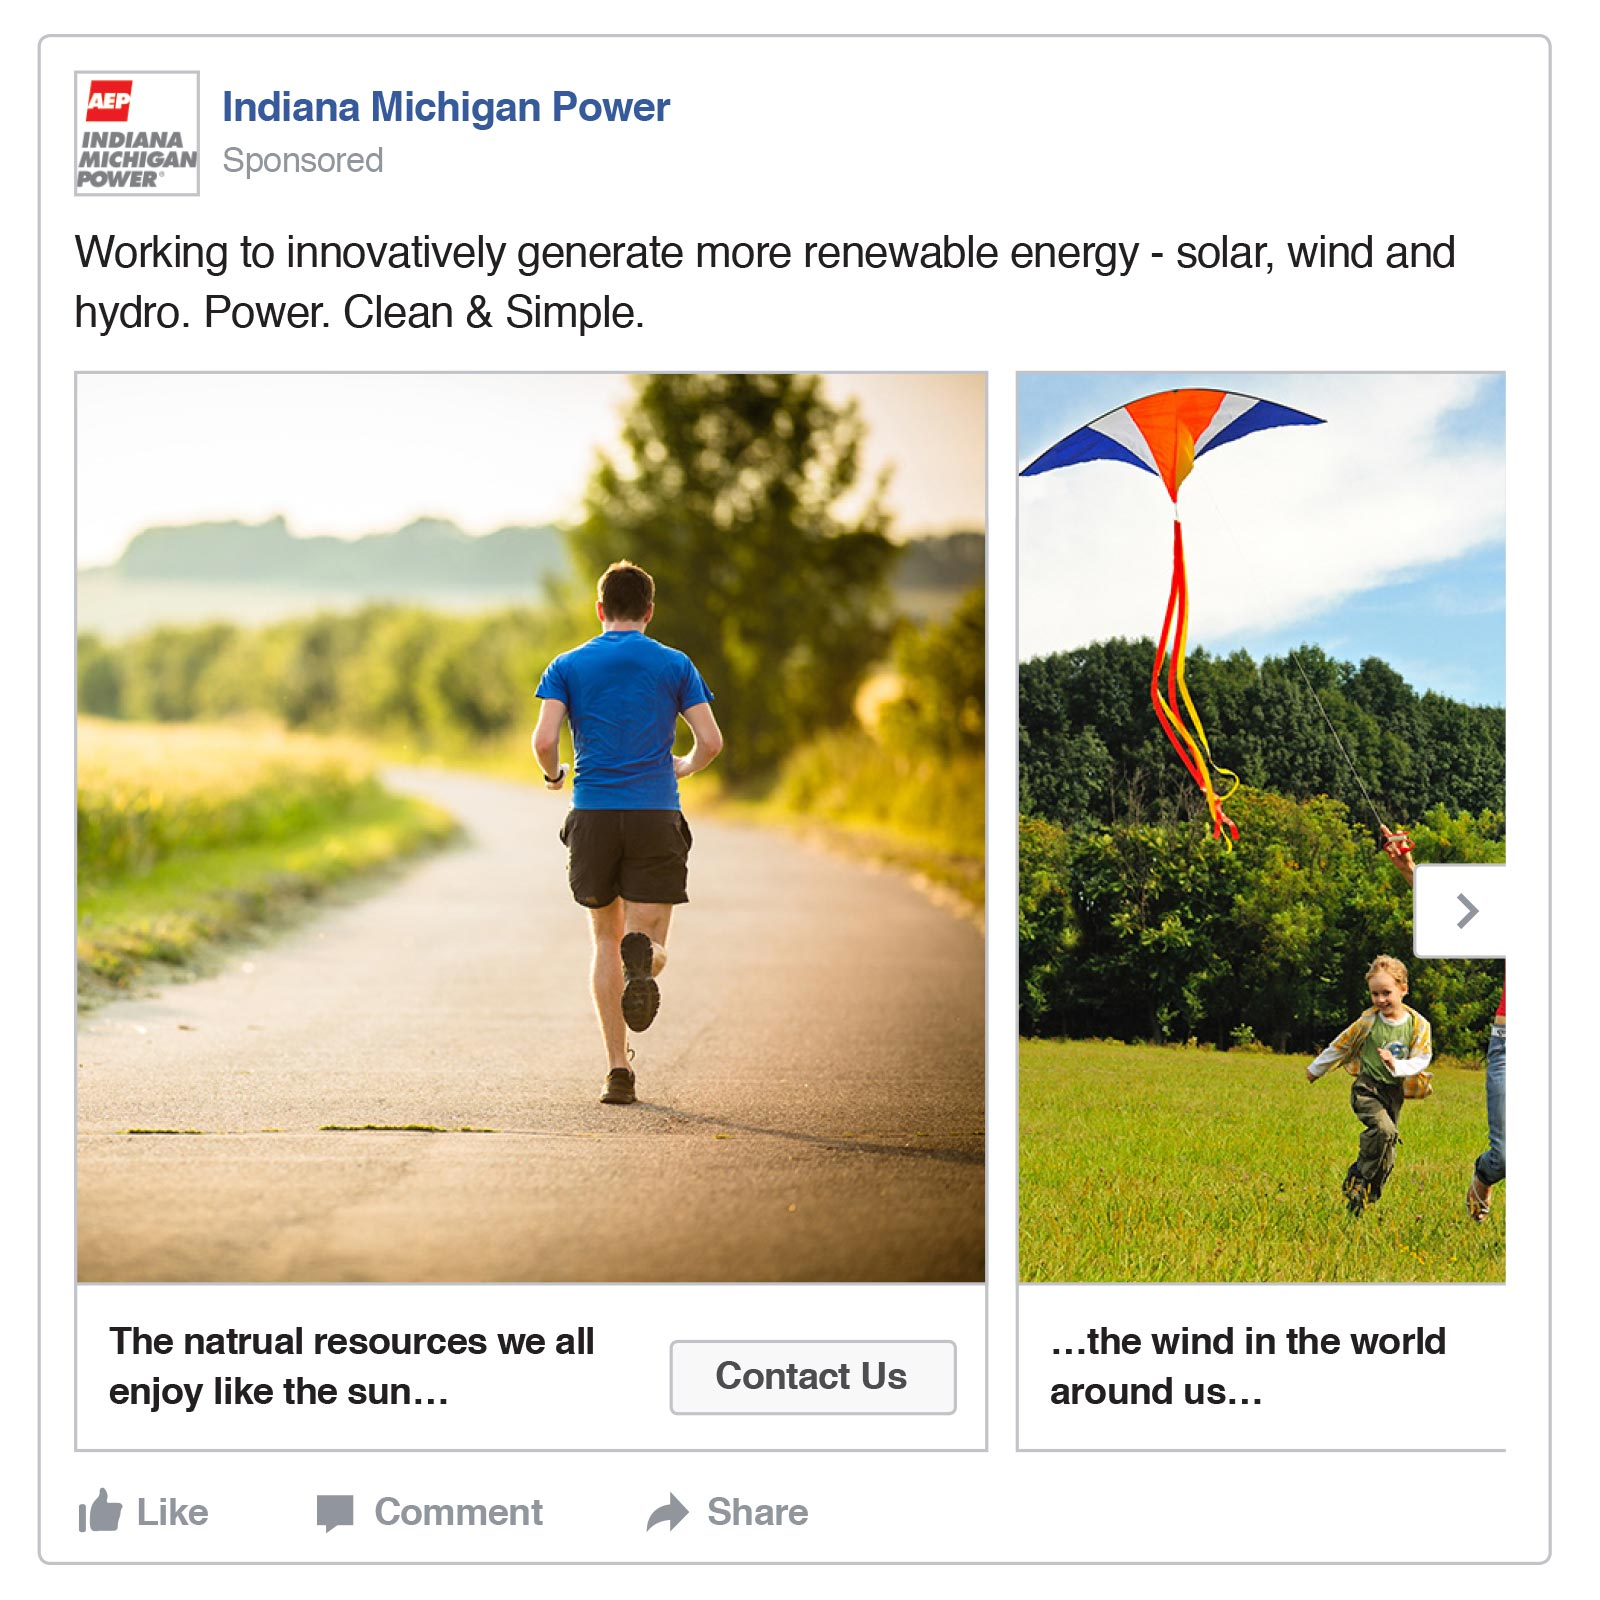 AEP Indiana Michigan Power, Facebook Campaign